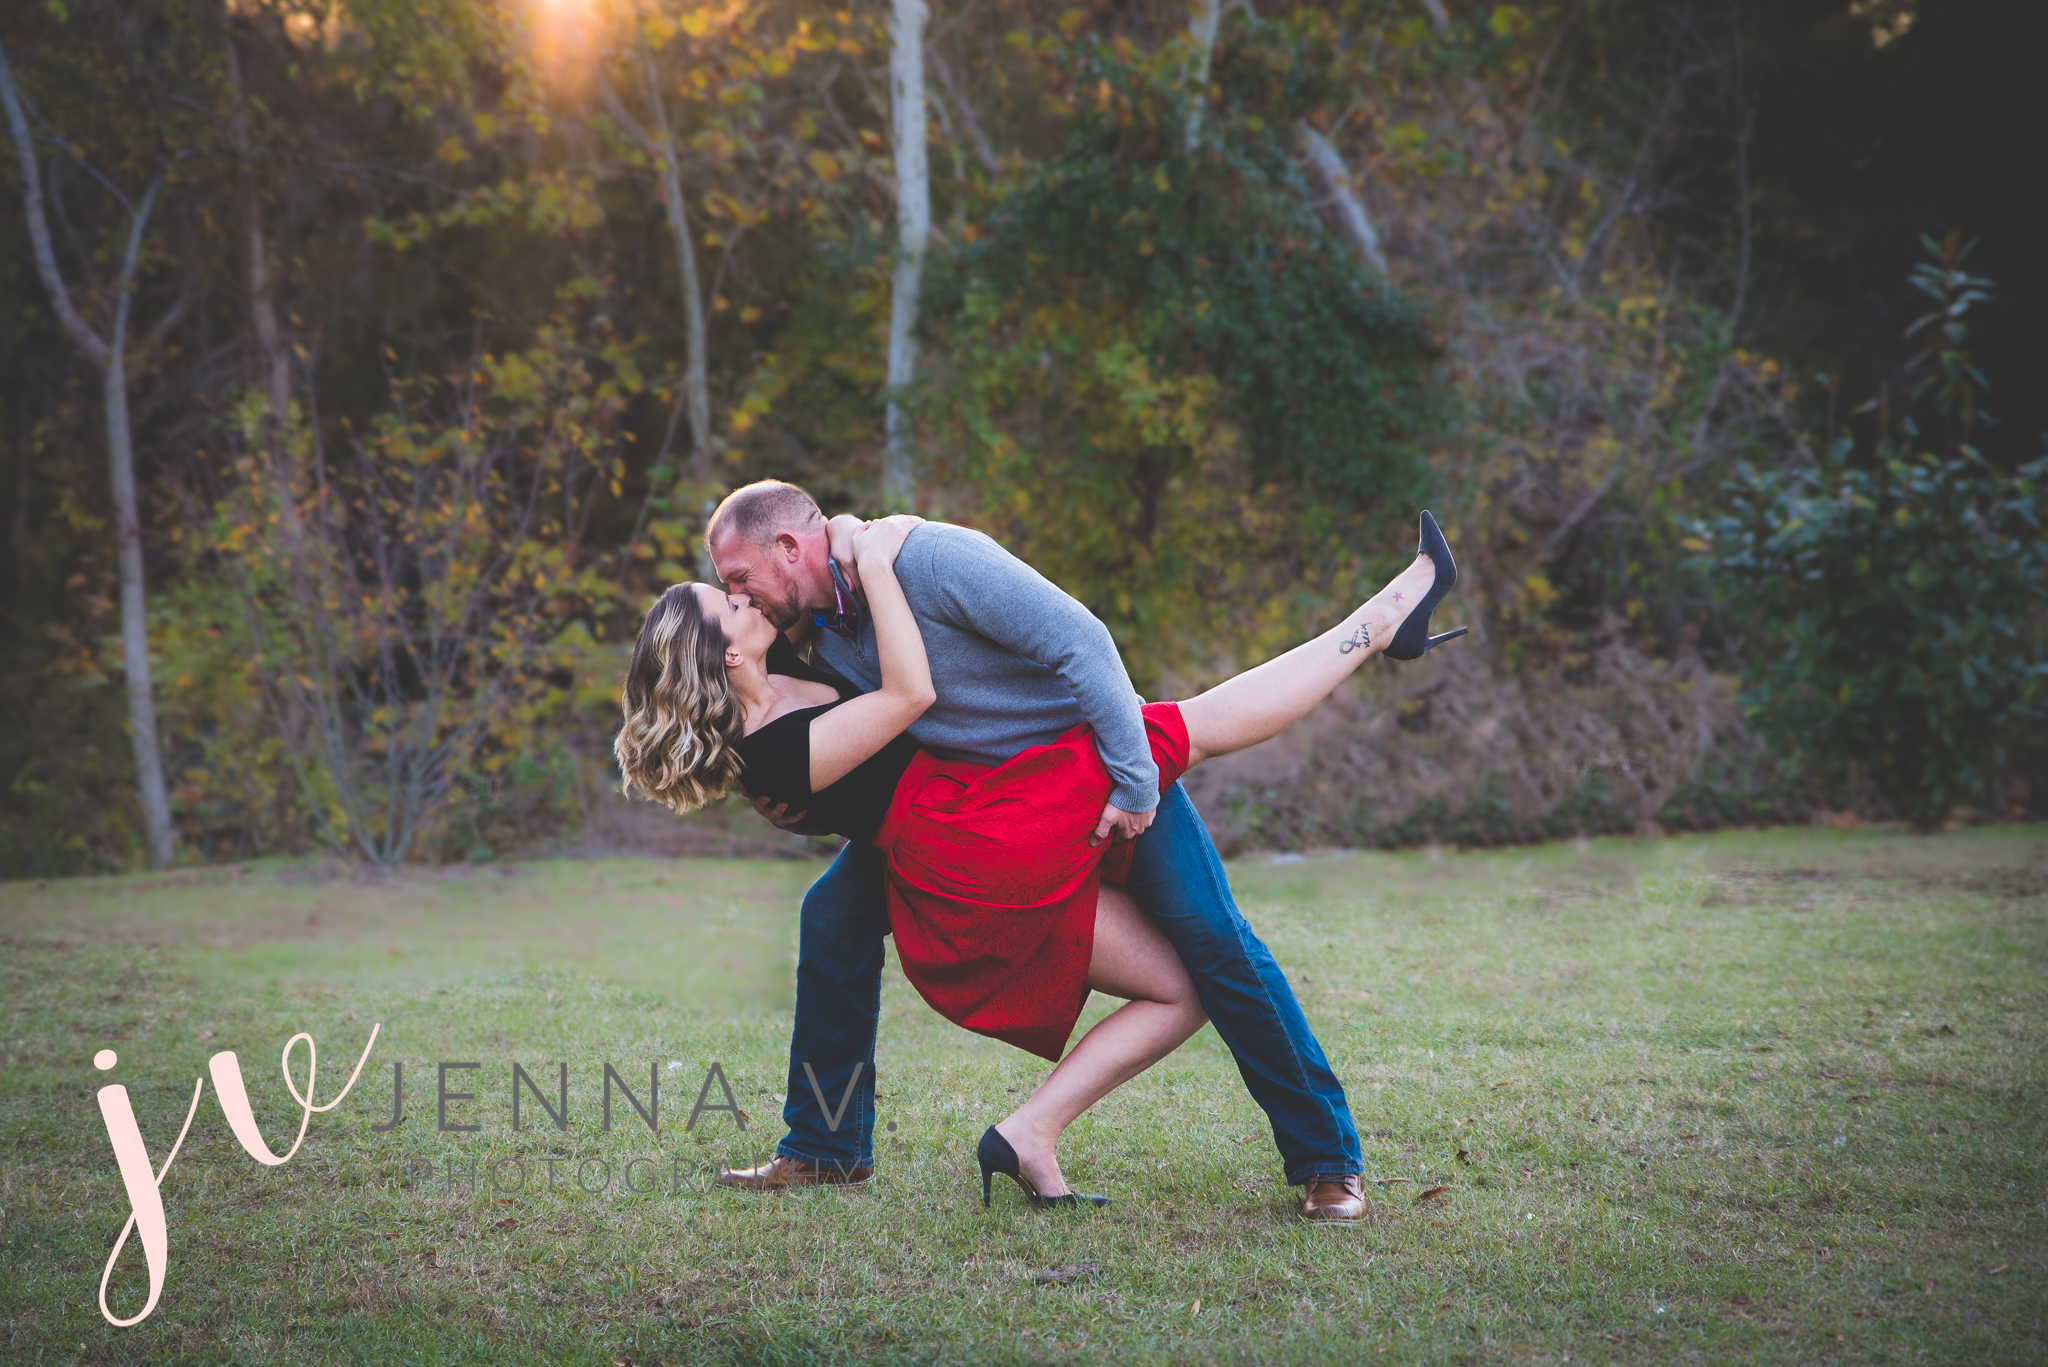 - JennaV Photography offers various portrait collections, ranging from engagements to in-home lifestyle sessions. Prices vary - please contact Jenna to customize your portrait collection!